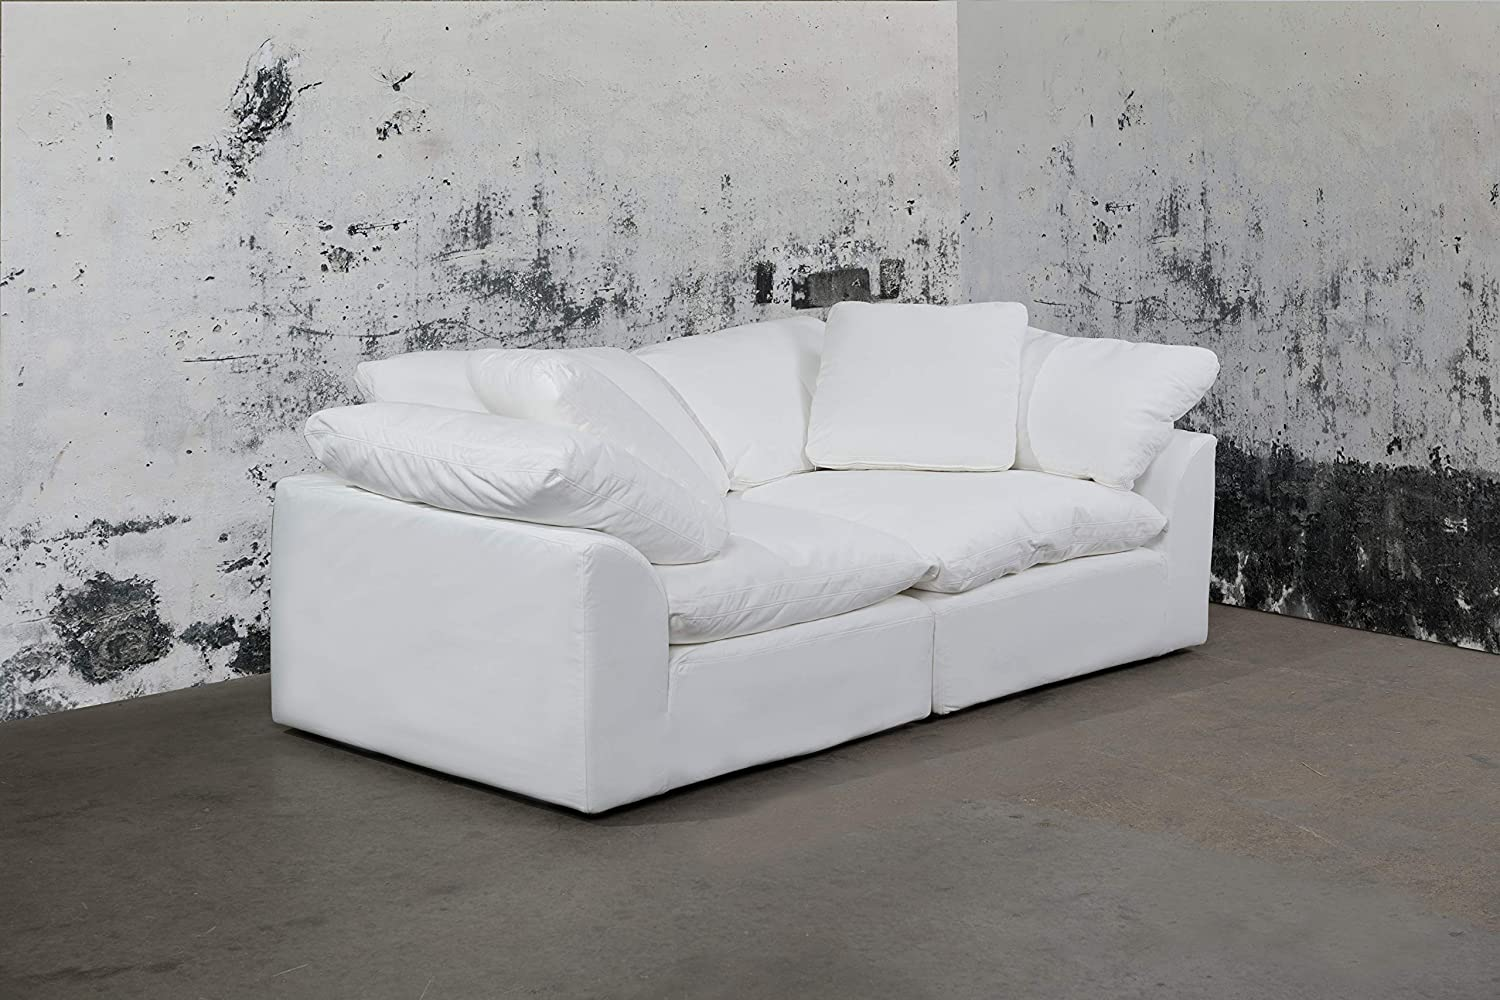 Admirable Sunset Trading Cloud Puff 2 Piece Modular Performance White Sectional Slipcovered Sofa Pabps2019 Chair Design Images Pabps2019Com